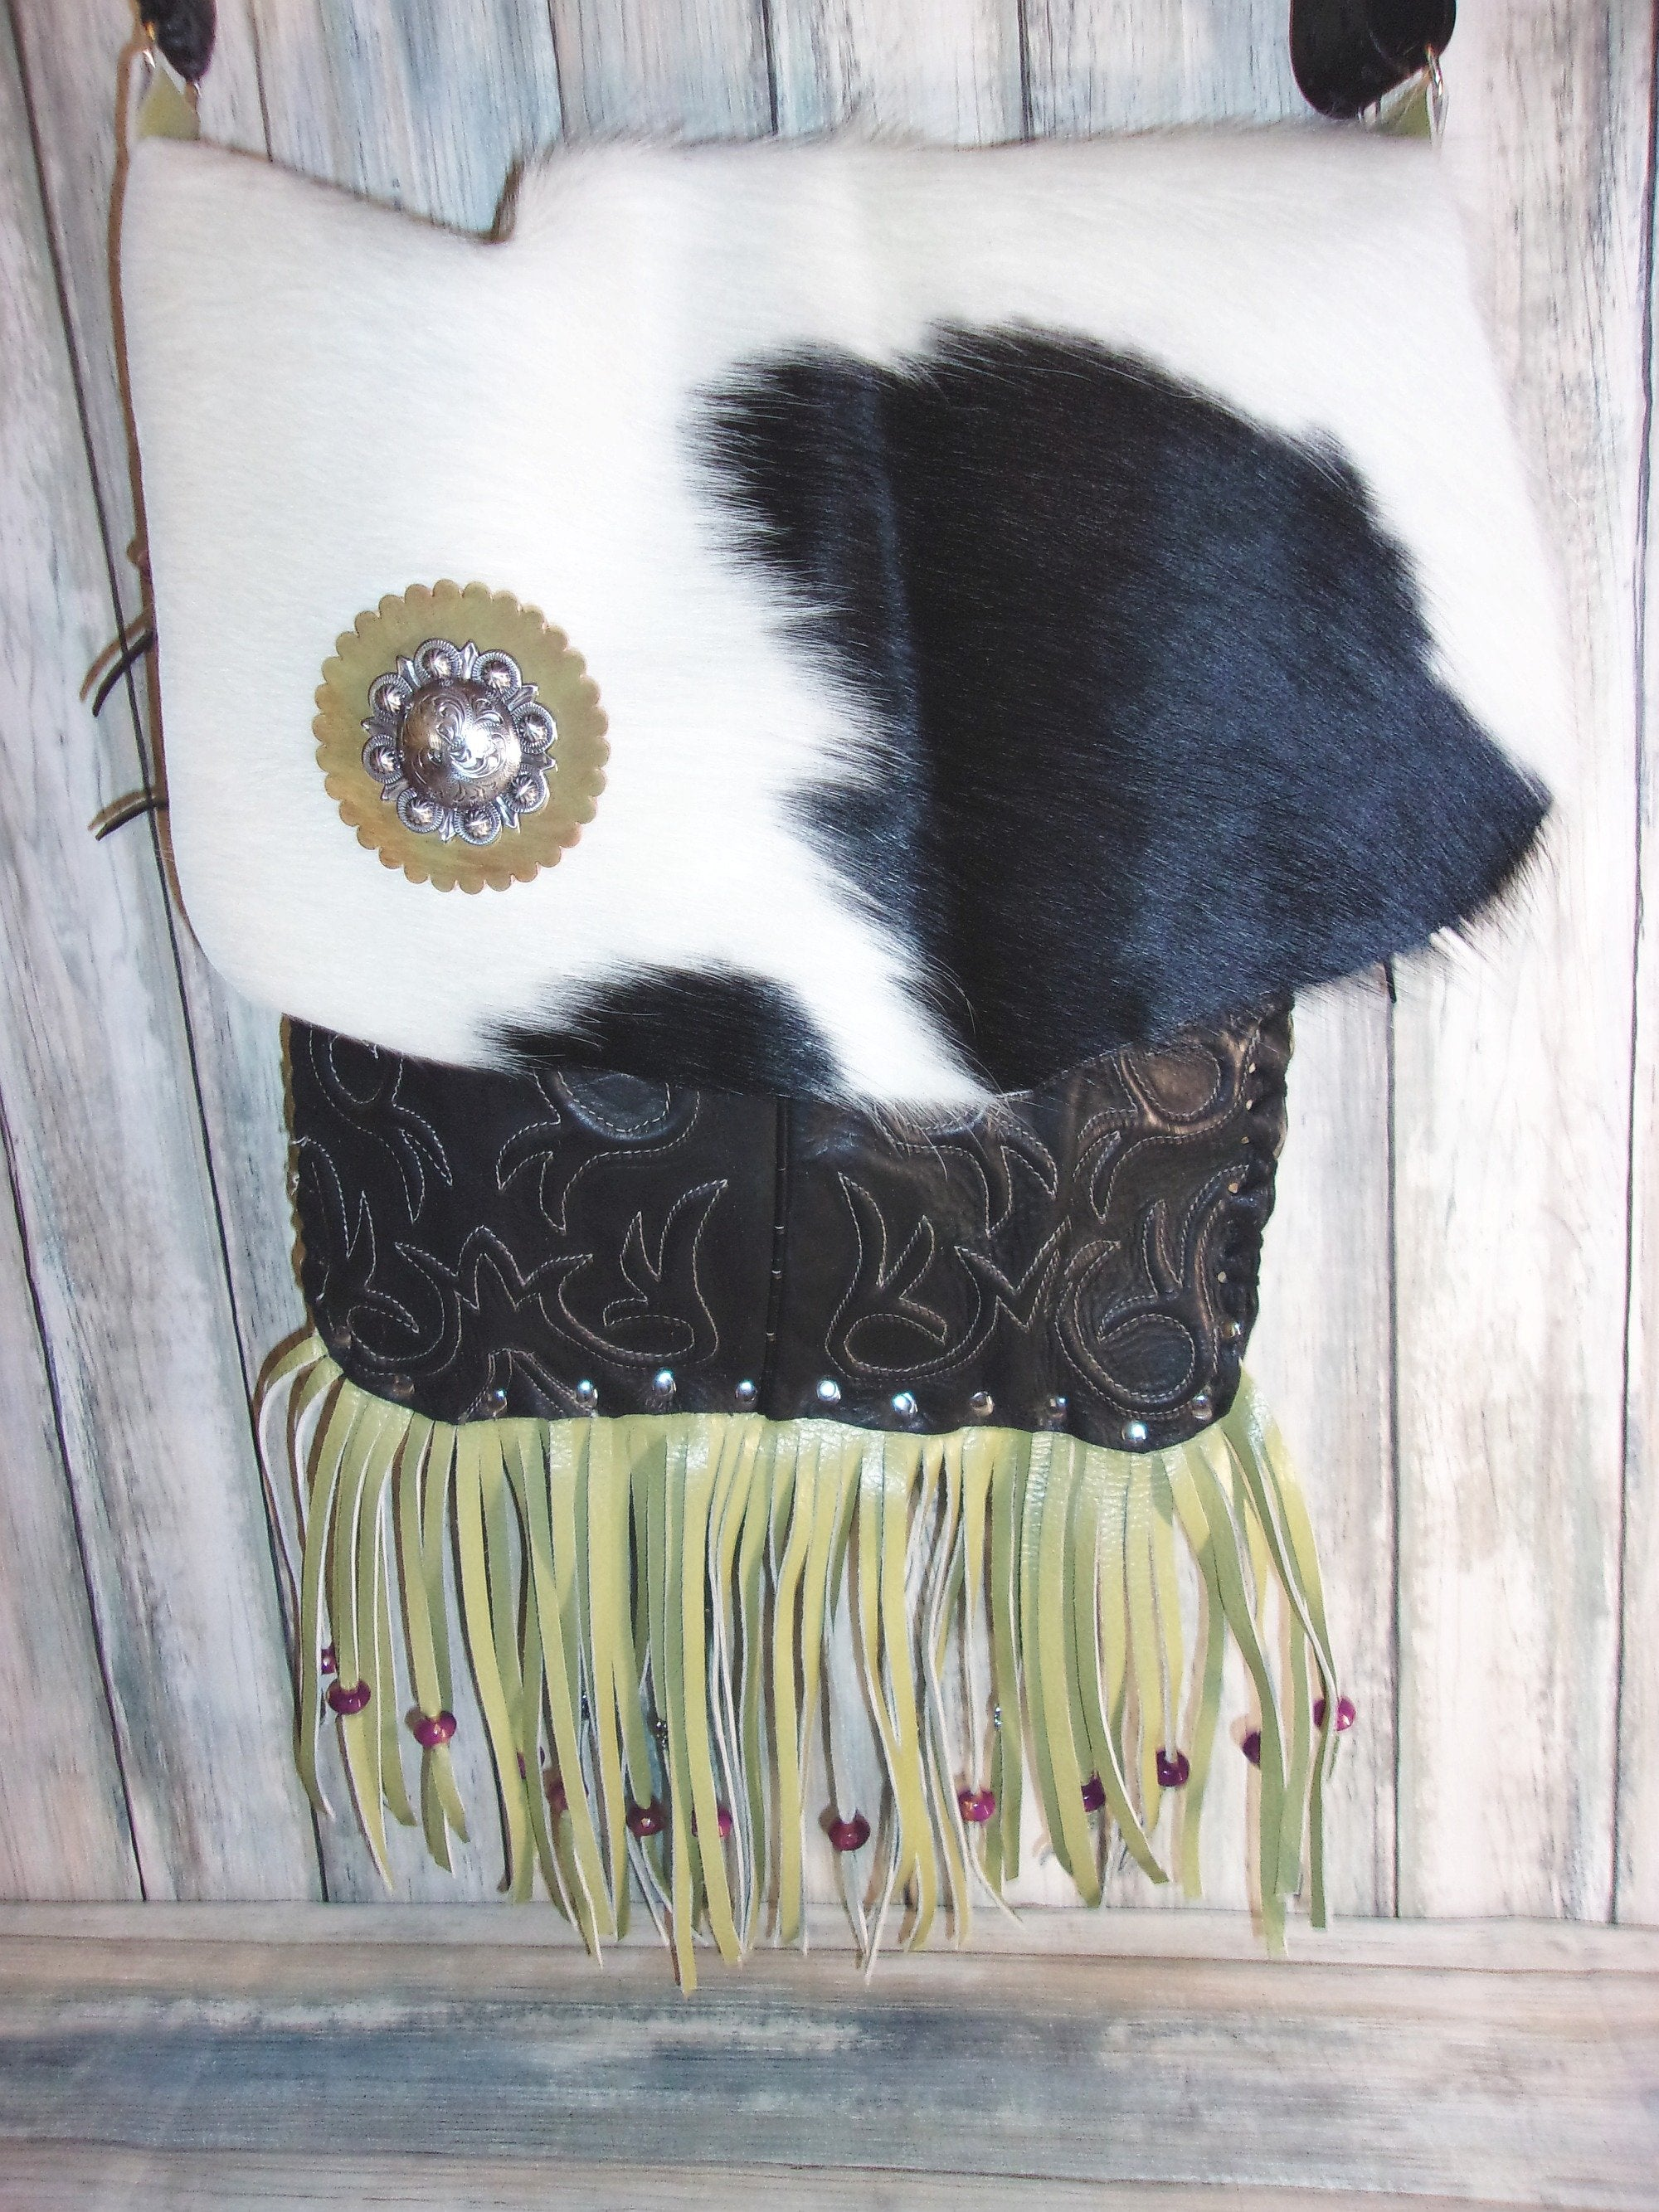 Flap-Top Fringe Boho Bag FT06 - Distinctive Western Handbags, Purses and Totes